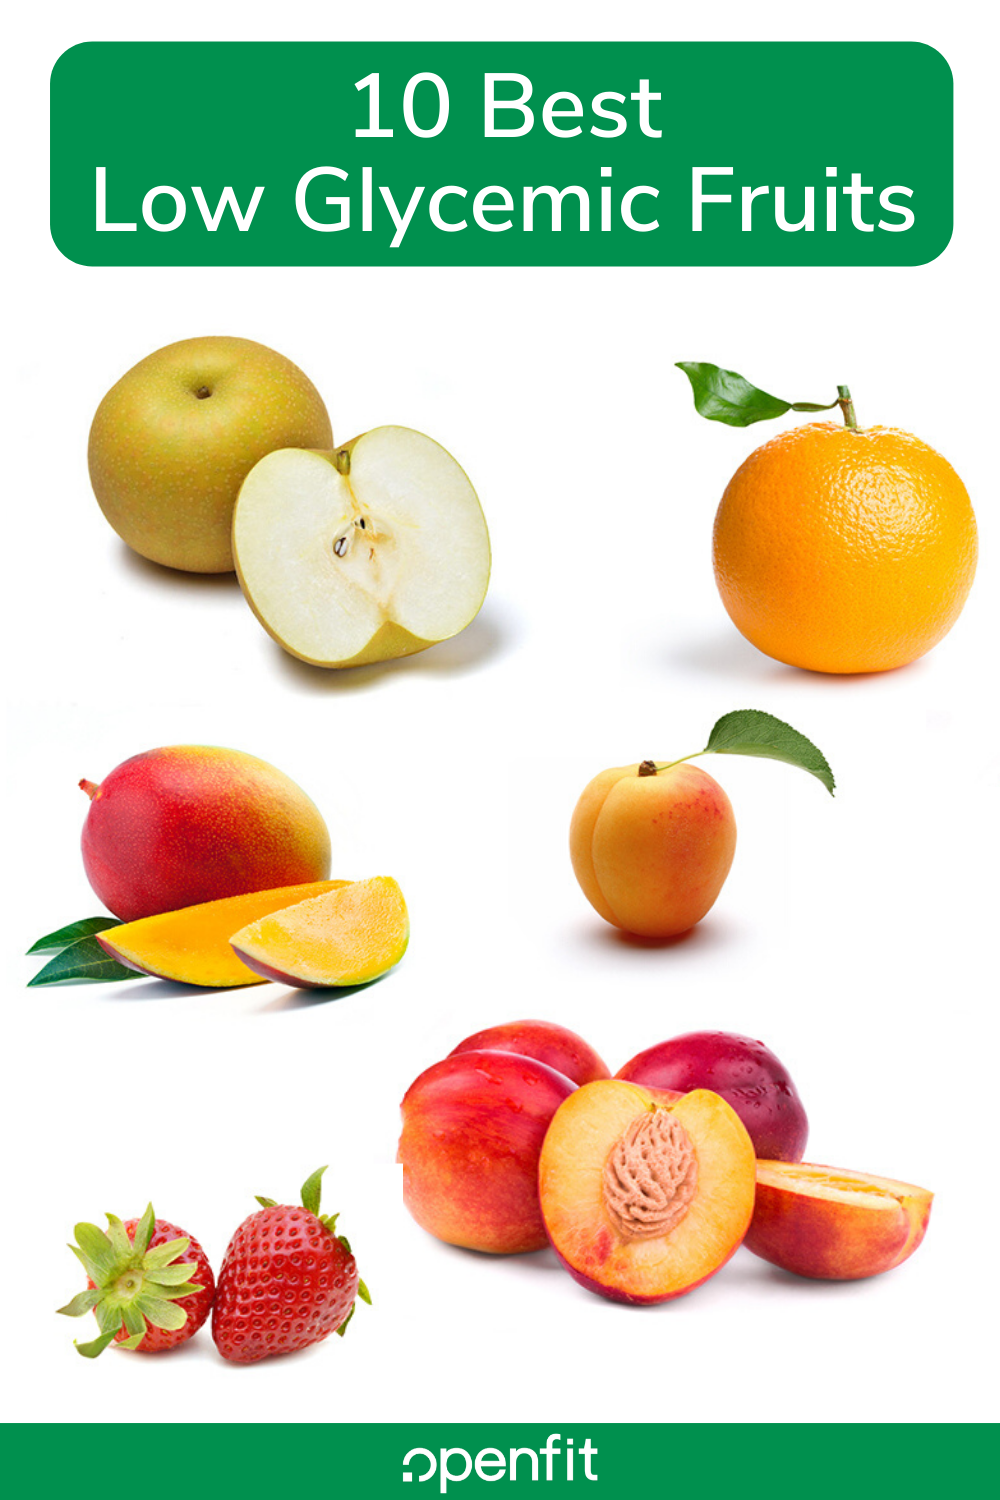 low glycemic fruits - pin image